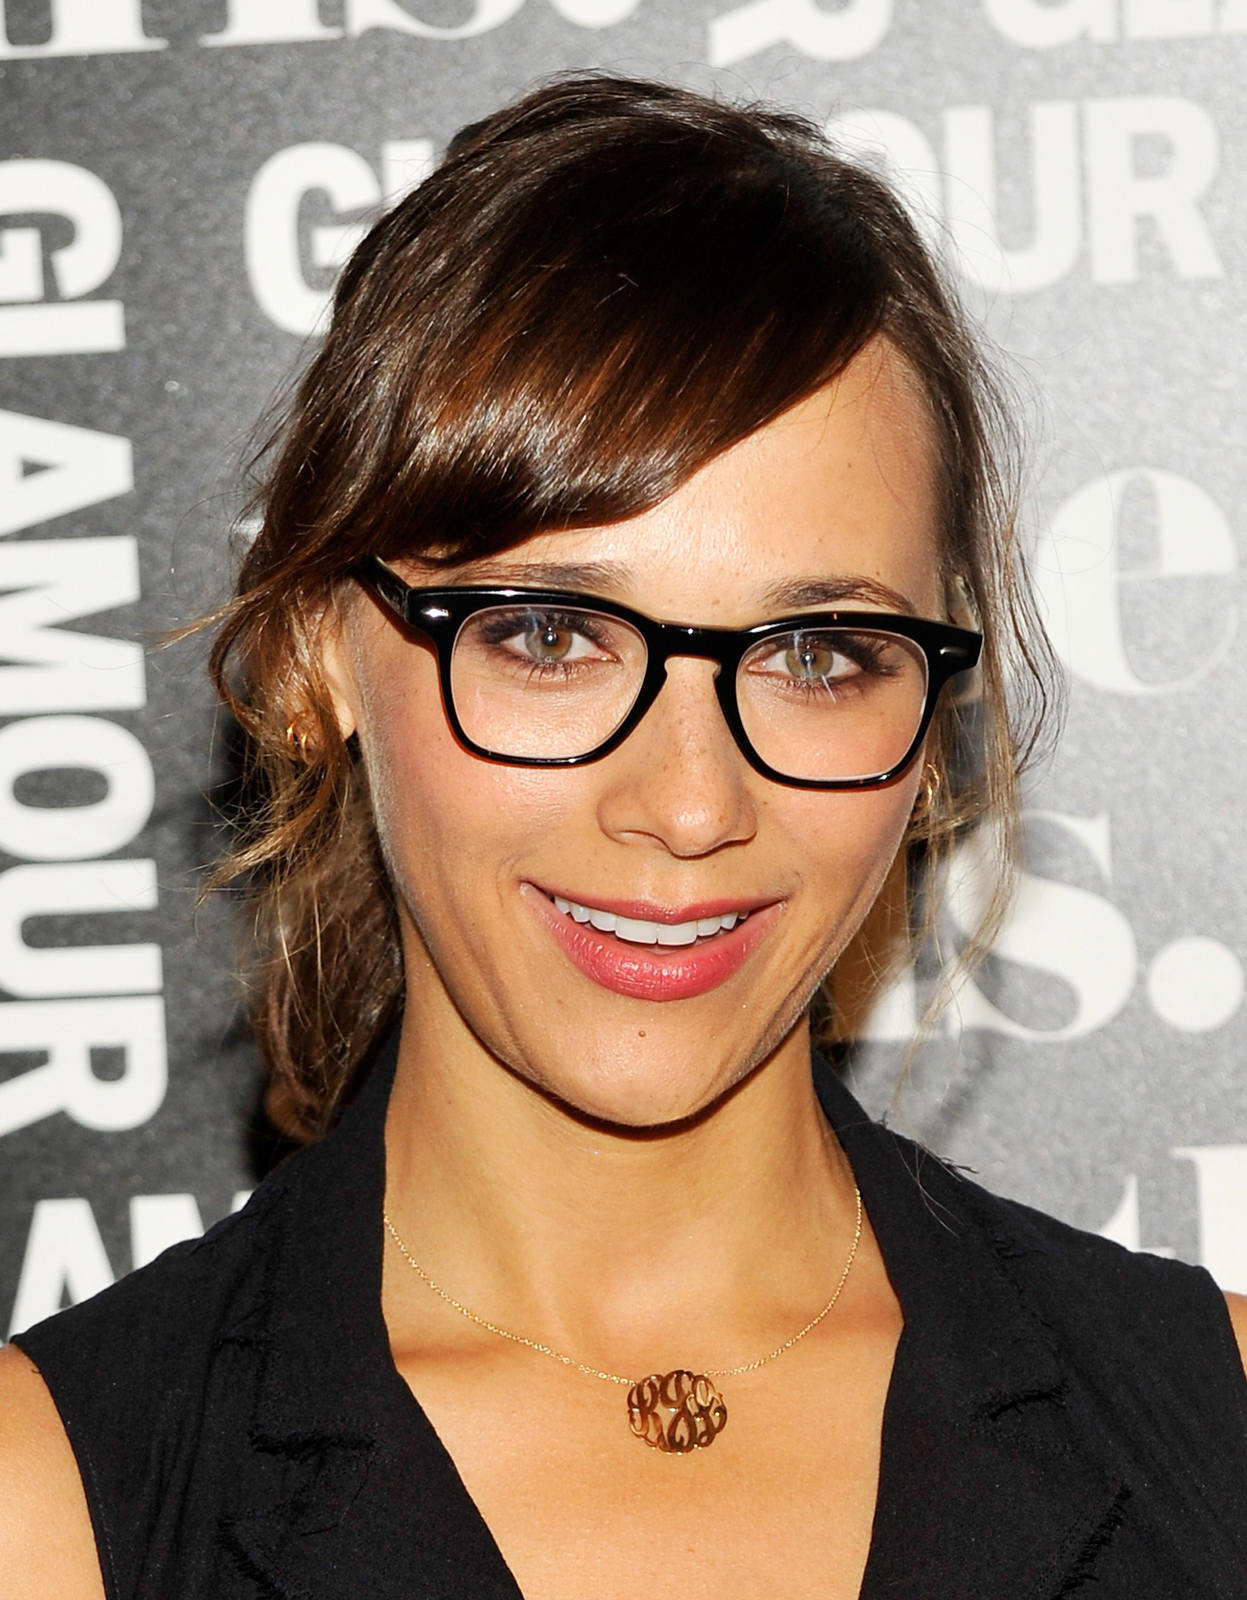 Rashida Jones Photo Gallery